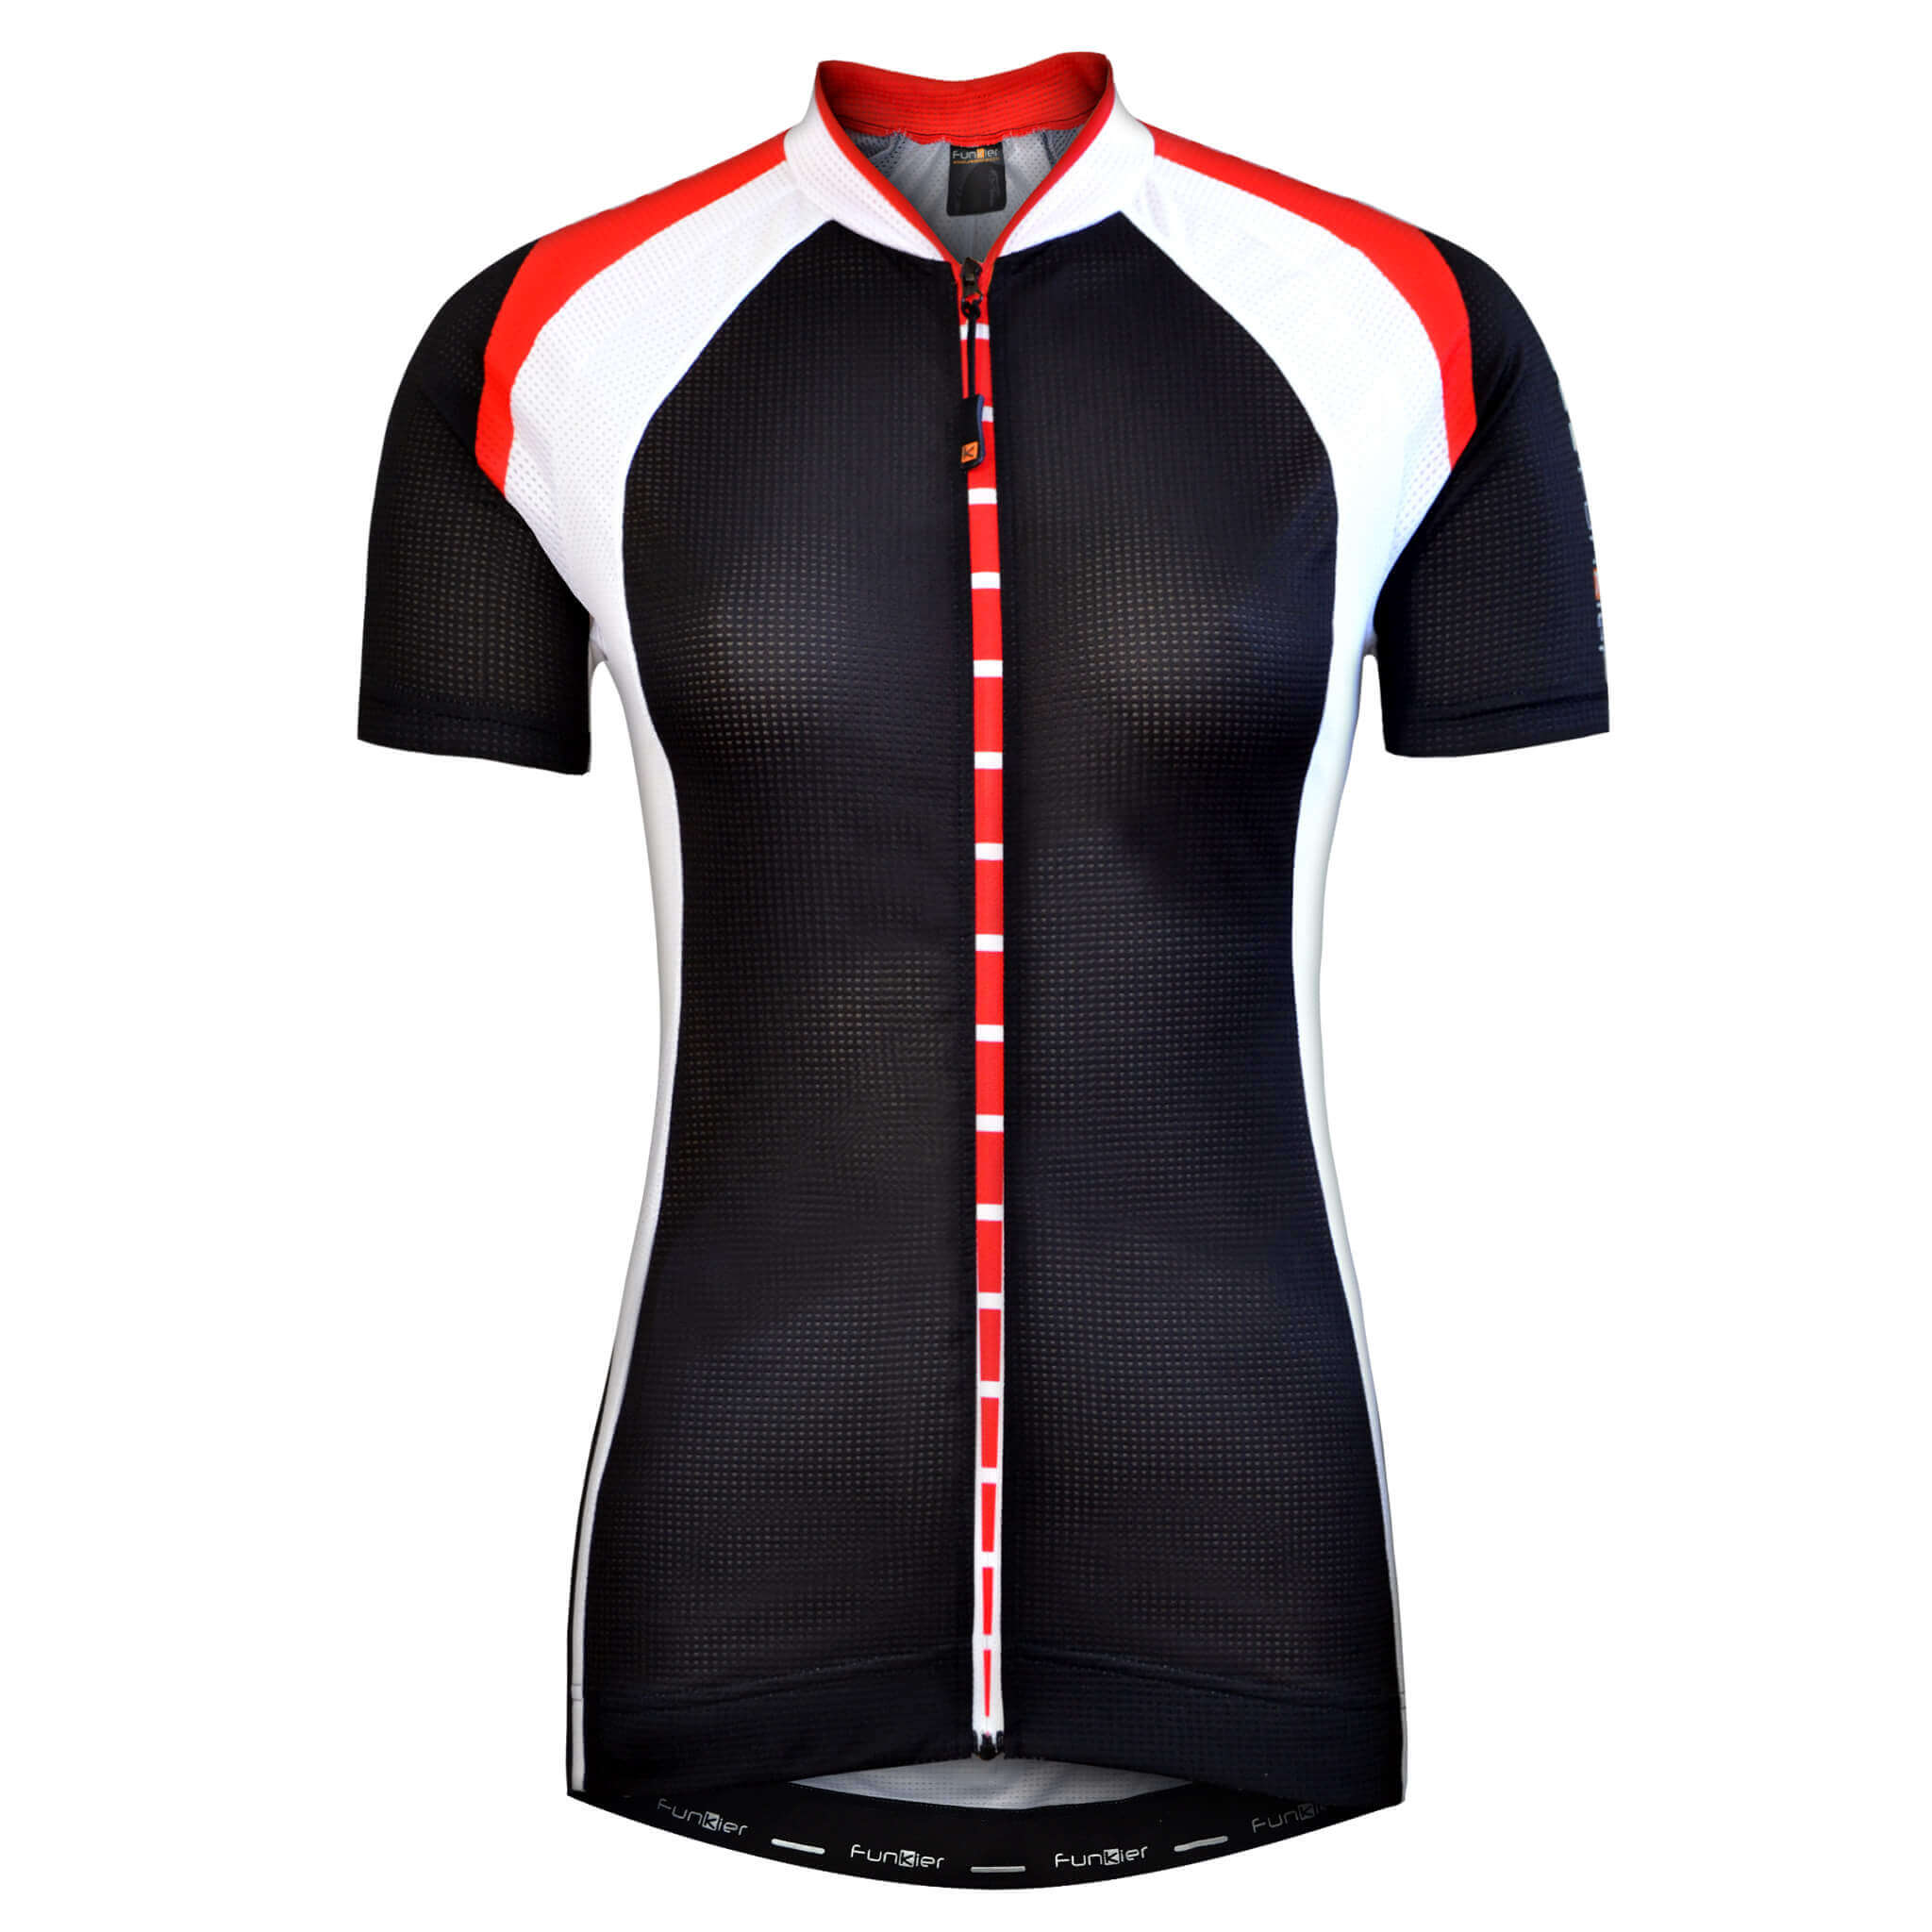 7527fdf31 Ladies Short Sleeve Jersey J-780 - Funkier Bike